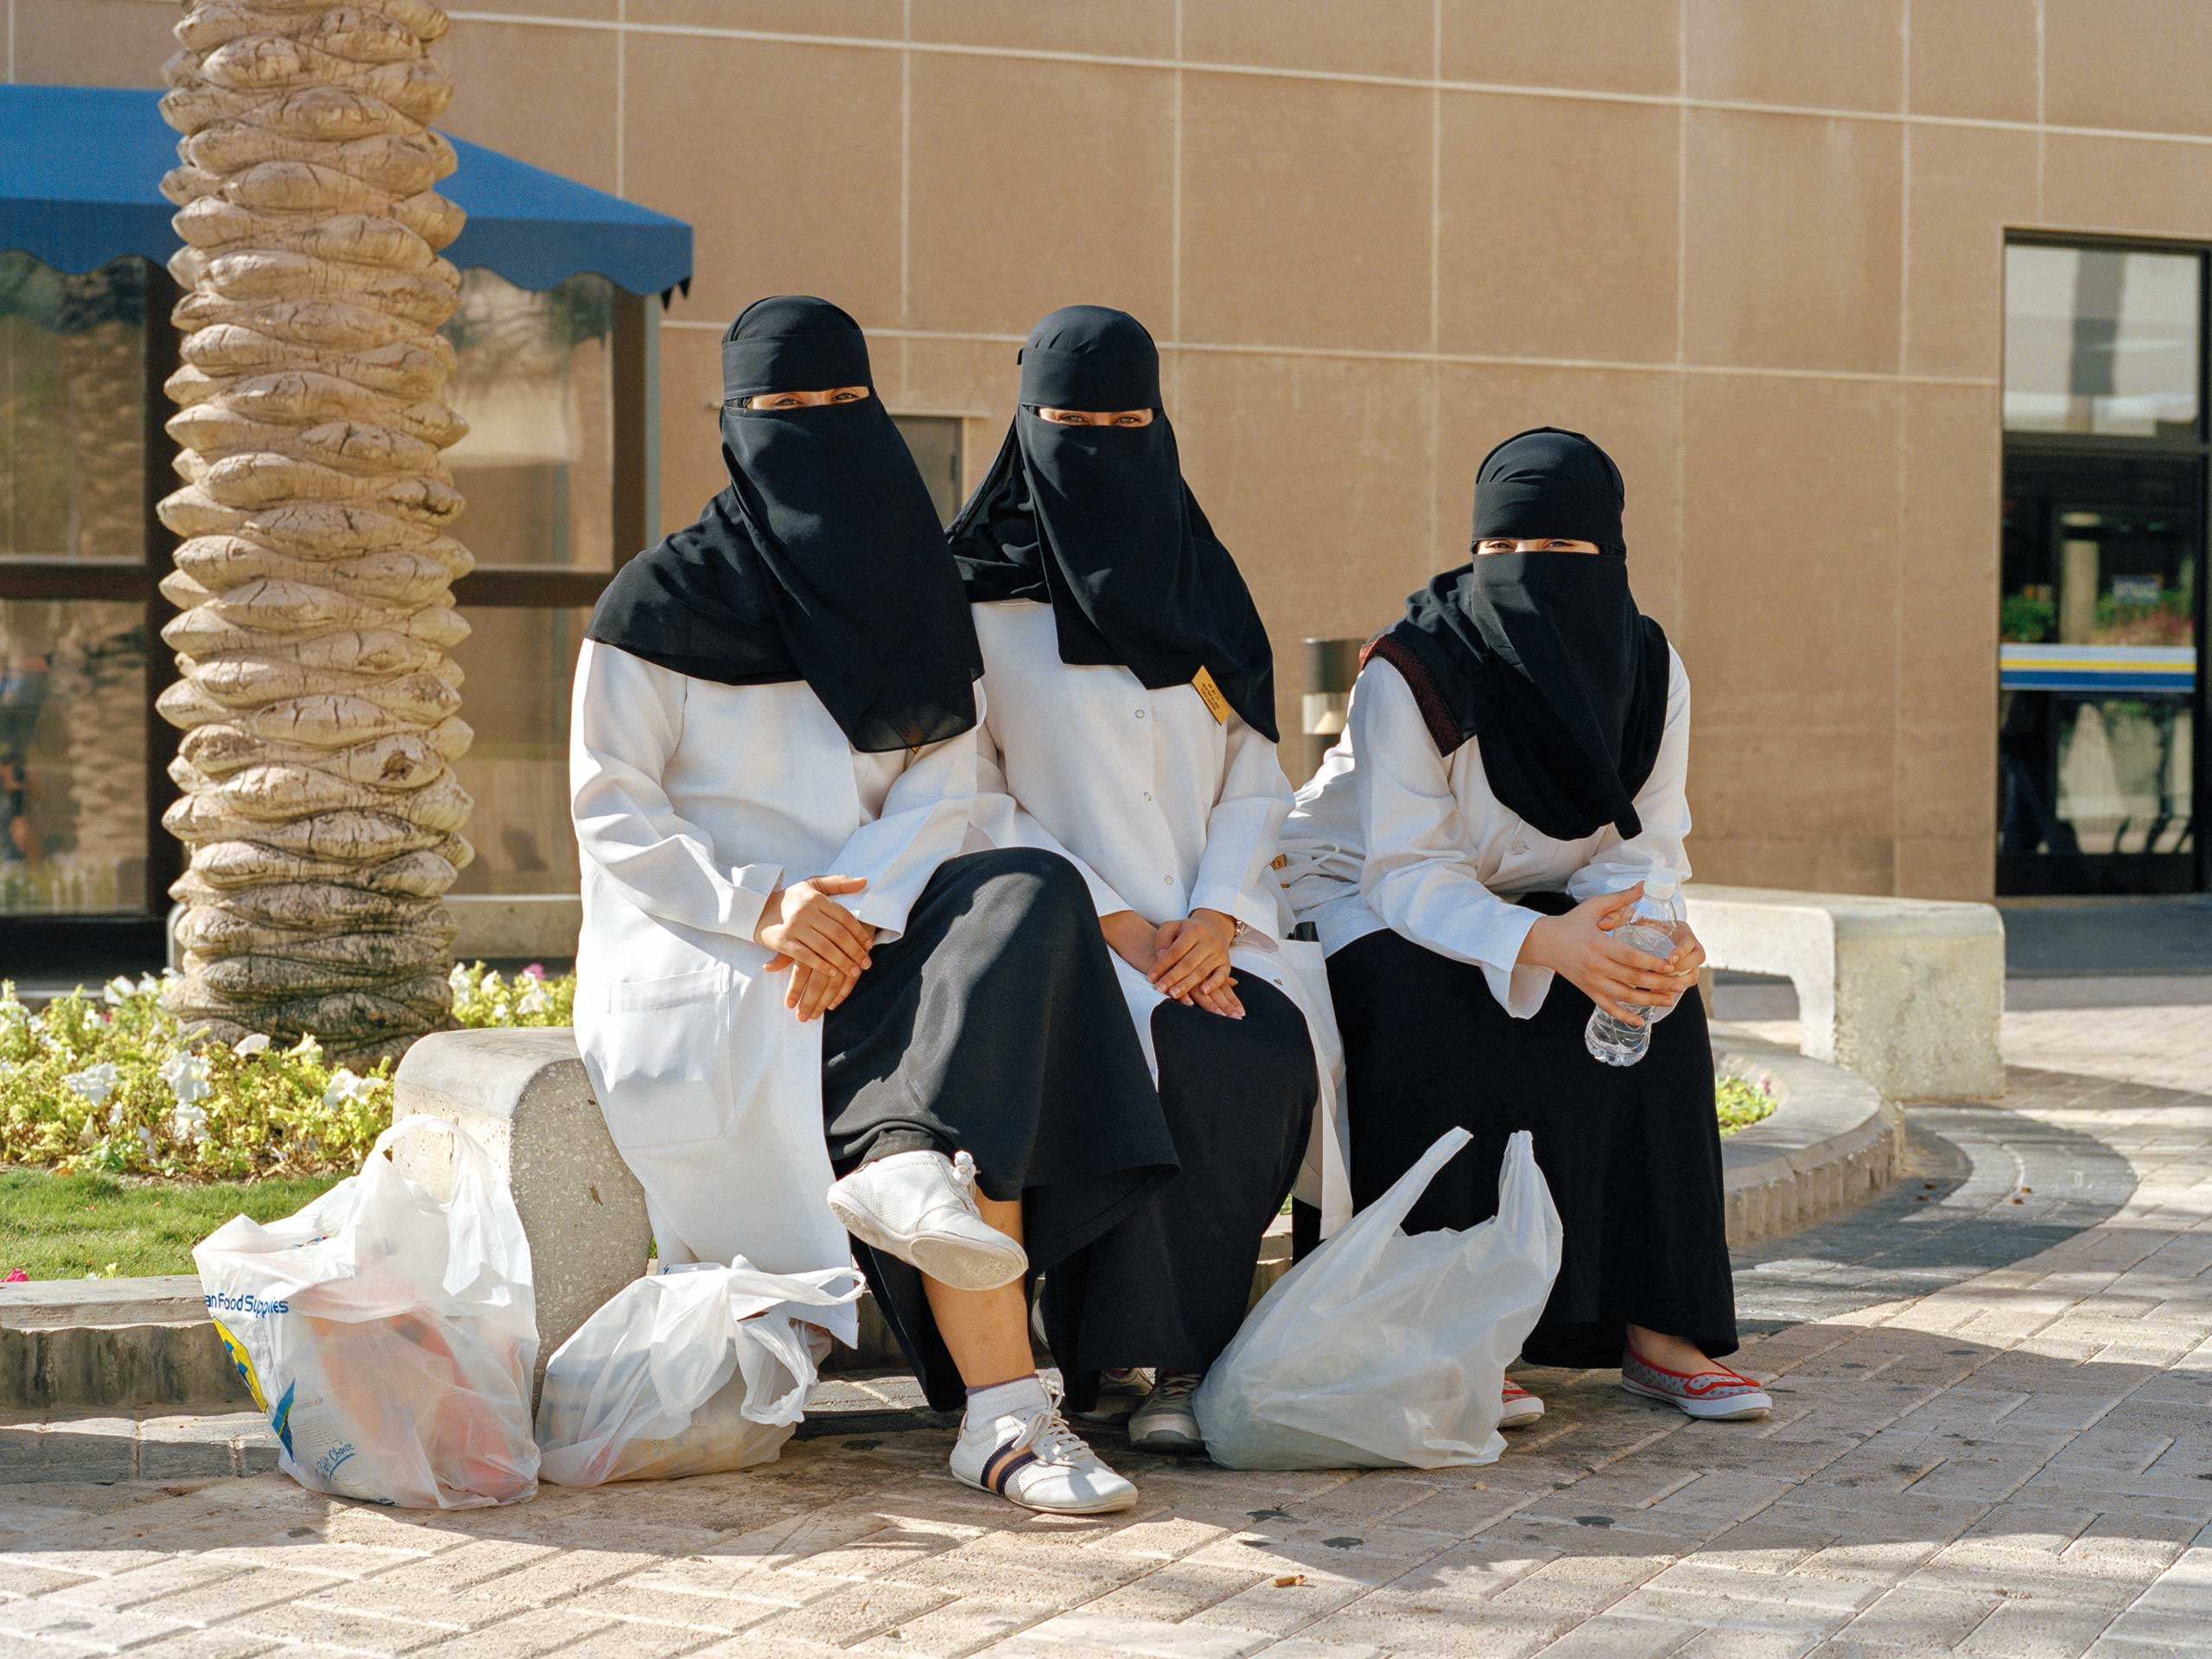 Nurses from Dhahran Health Center wait for a bus after work in front of the Commissary. Saudi Aramco's health center was first operated by the company itself, but since 2014, it became Johns Hopkins Aramco Healthcare, the first-of-its-kind health care joint venture between Saudi Aramco, a world leader in energy, and Johns Hopkins Medicine.